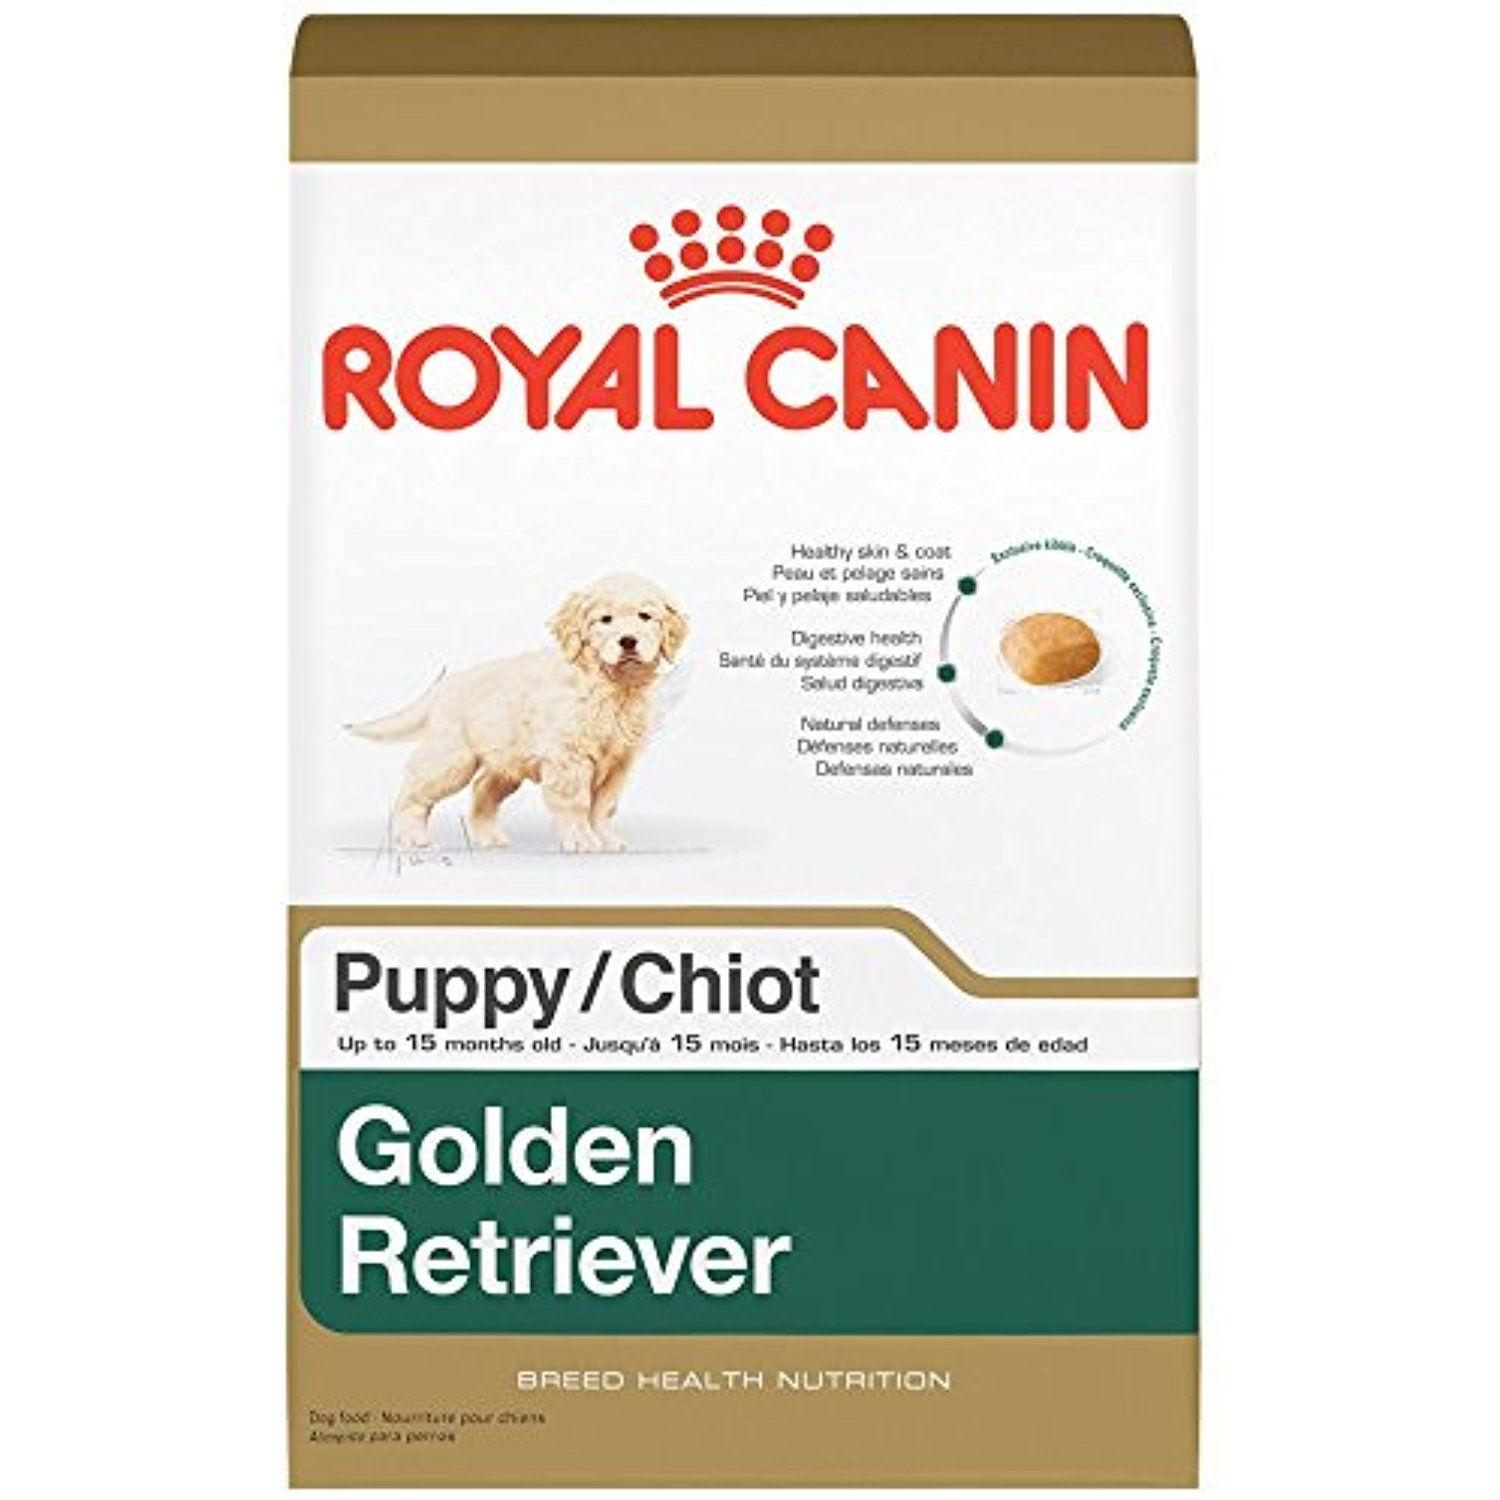 Royal Canin Breed Health Nutrition Golden Retriever Puppy Dry Dog Food 30 Pound Please Be Su Dry Dog Food